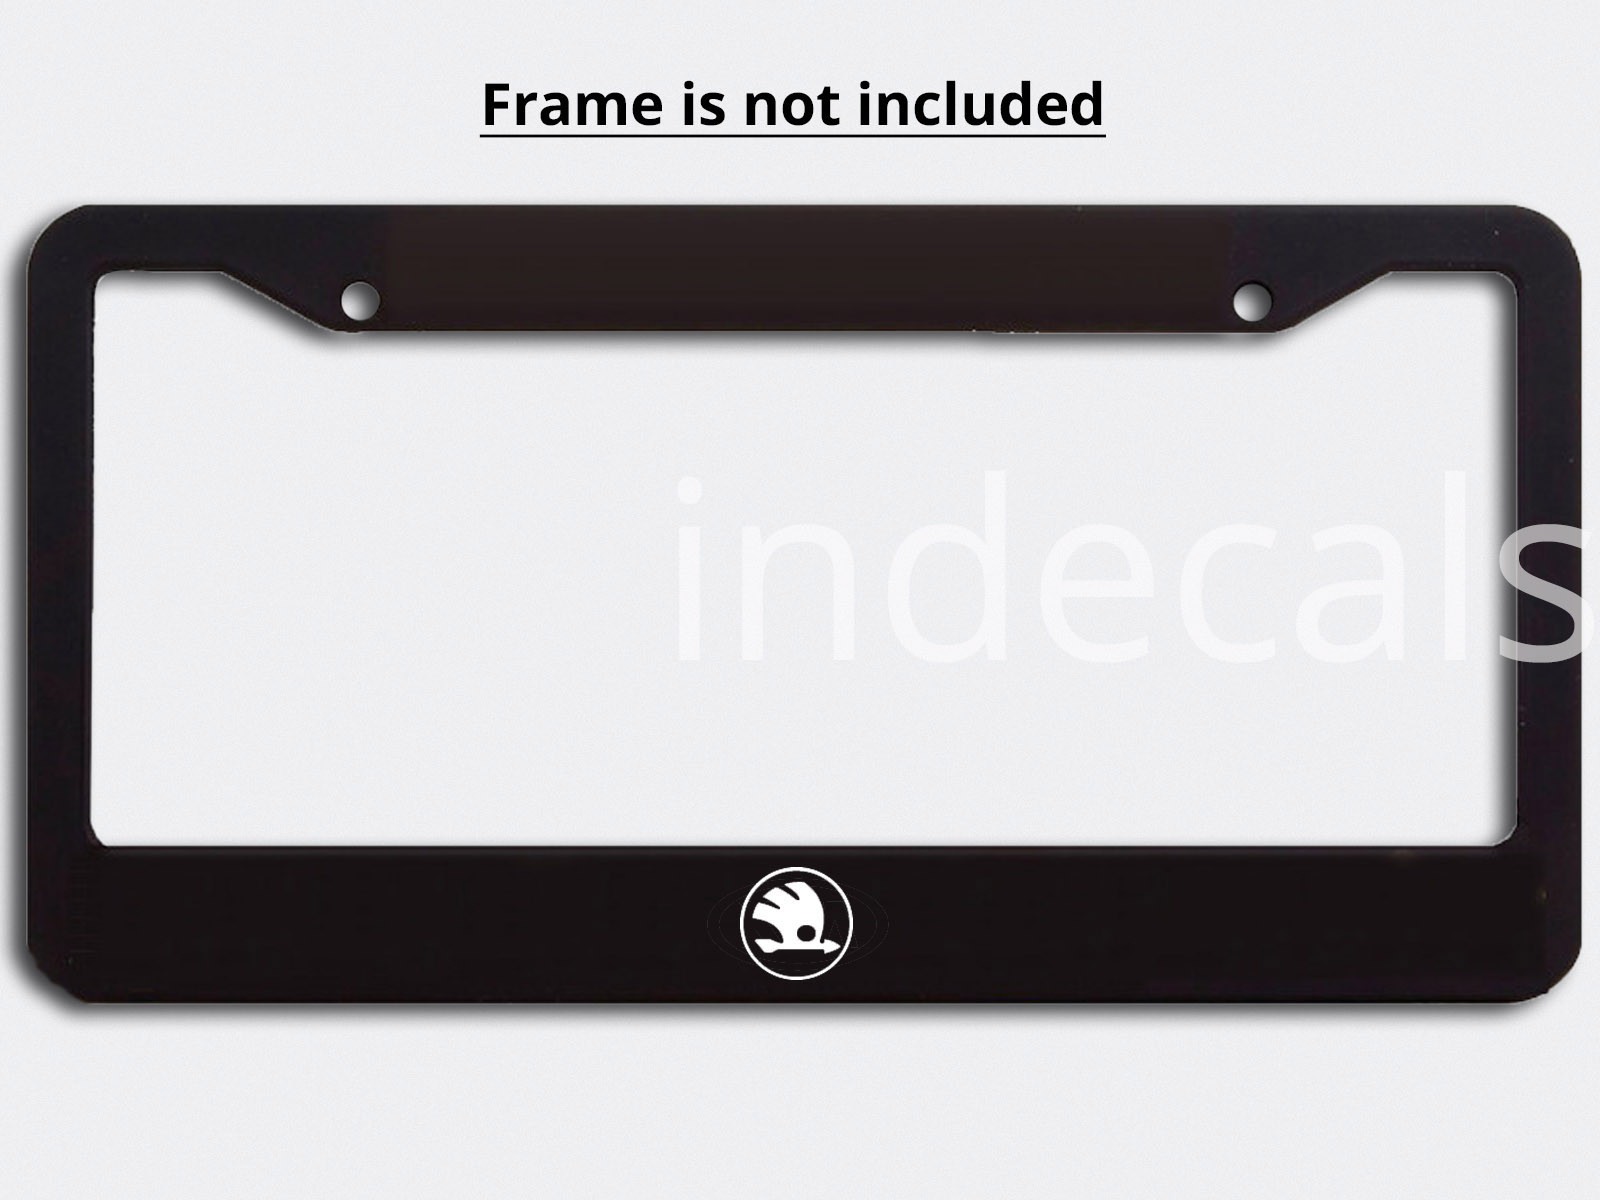 3 x Skoda Stickers for License Plate Frame - White